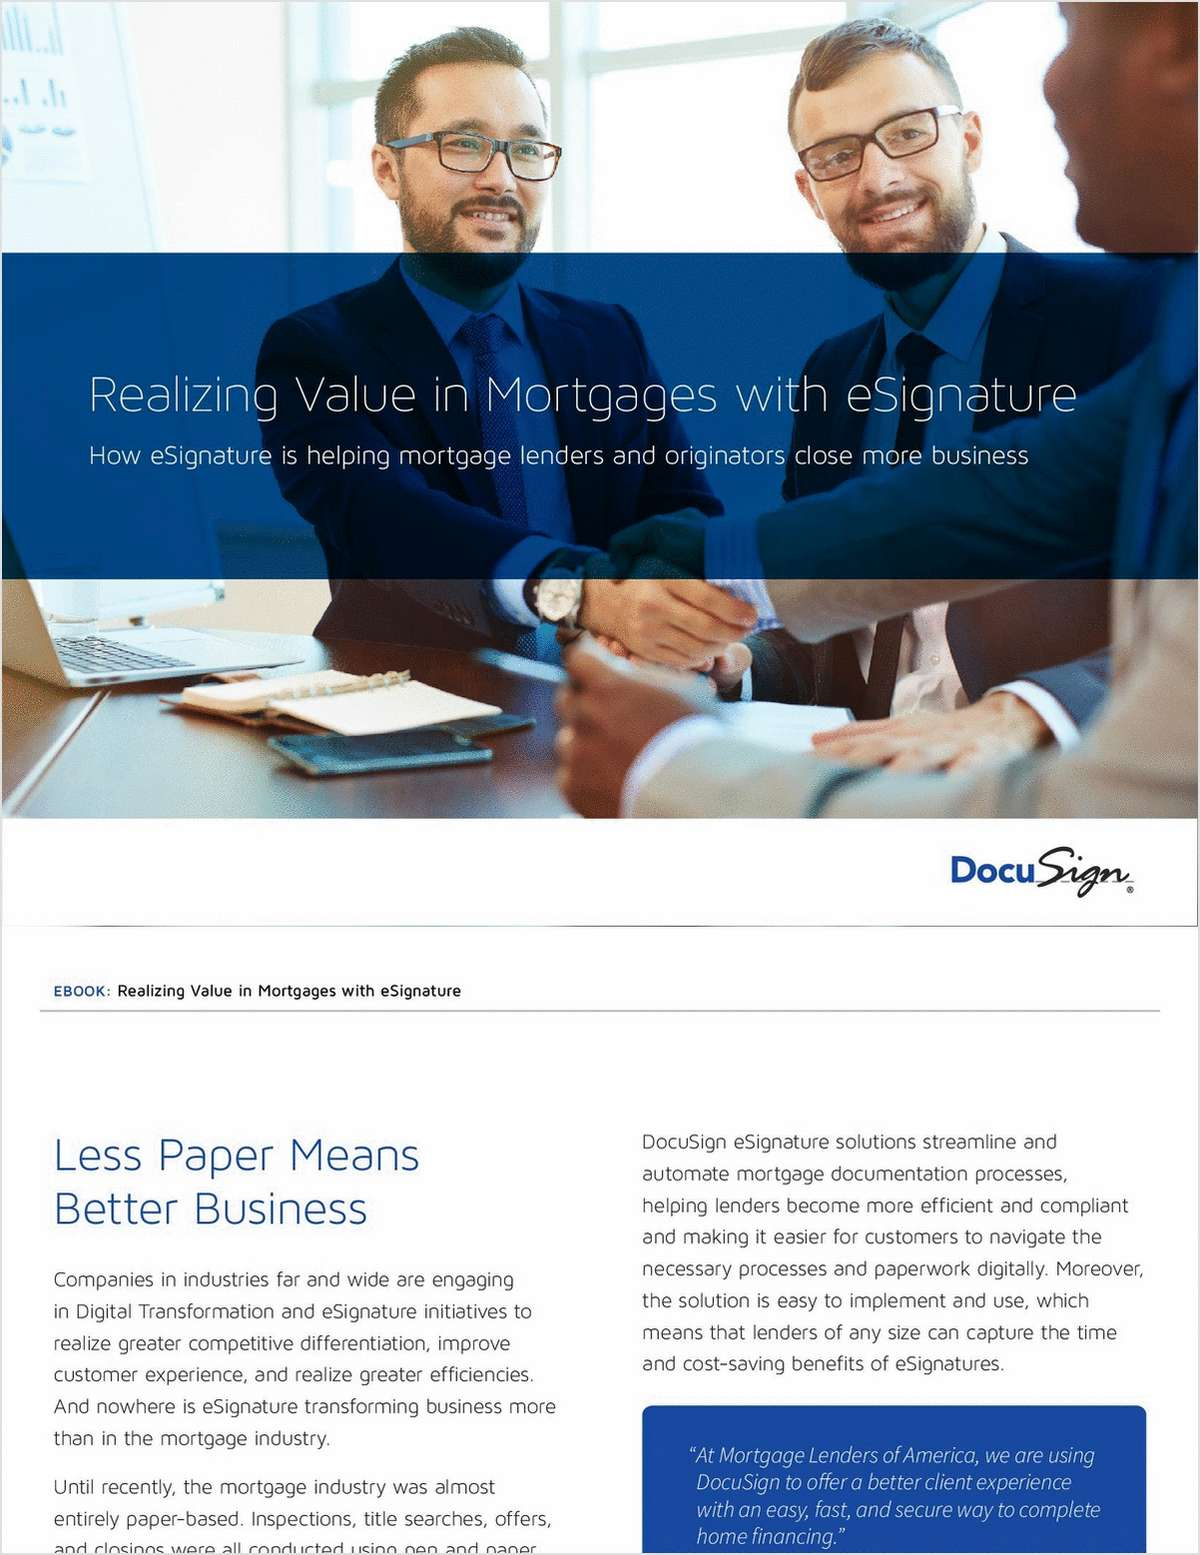 How to Close More Mortgages with eSignature Solutions